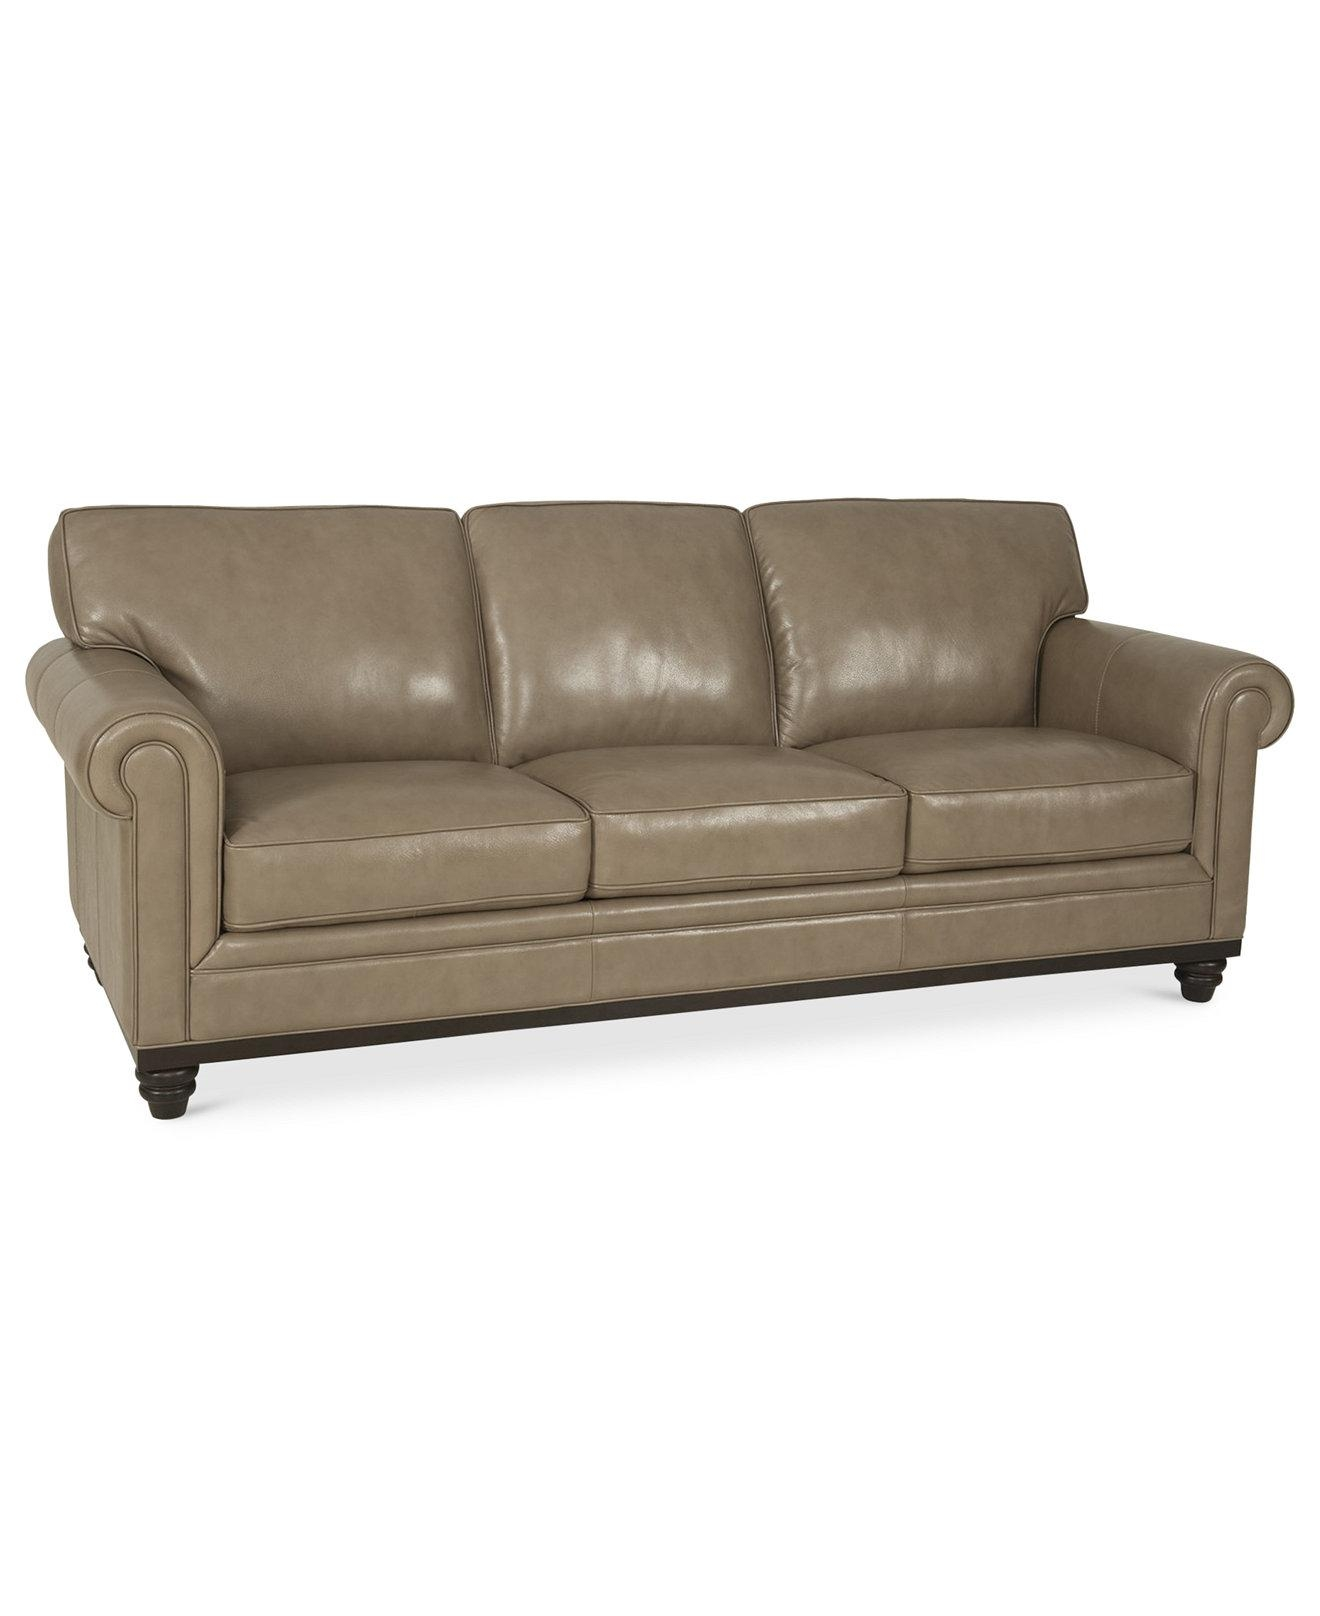 Sofas: Macys Leather Chair | Macys Furniture Store | Macys Sofa Bed Intended For Macys Sofas (Image 20 of 20)